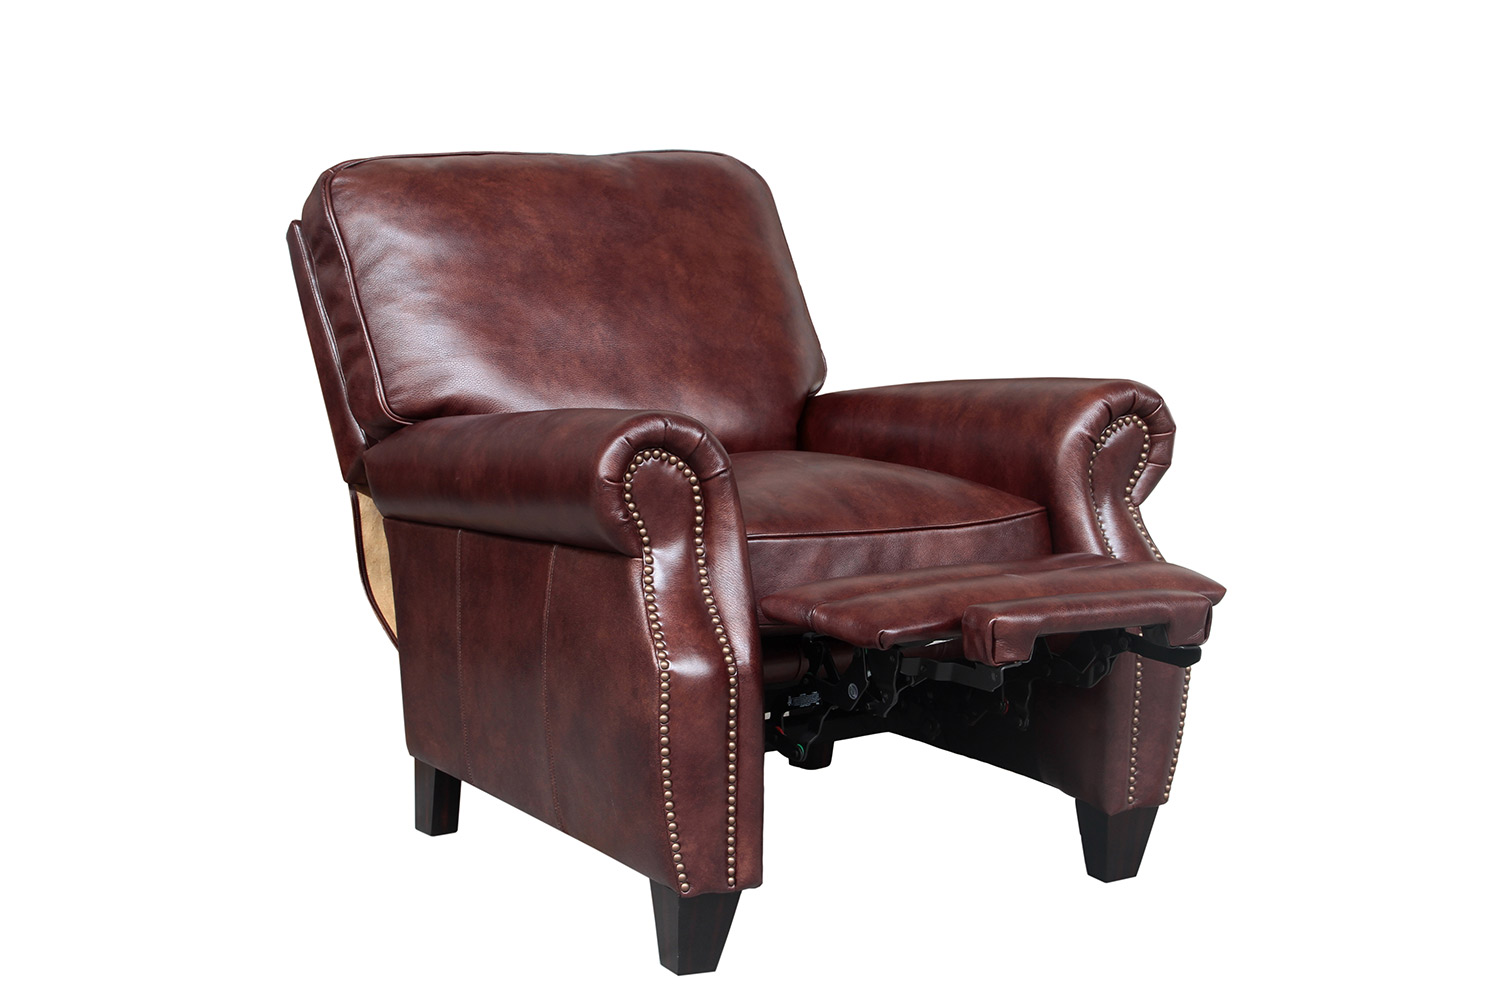 Barcalounger Briarwood Recliner Chair - Wenlock Fudge/All Leather